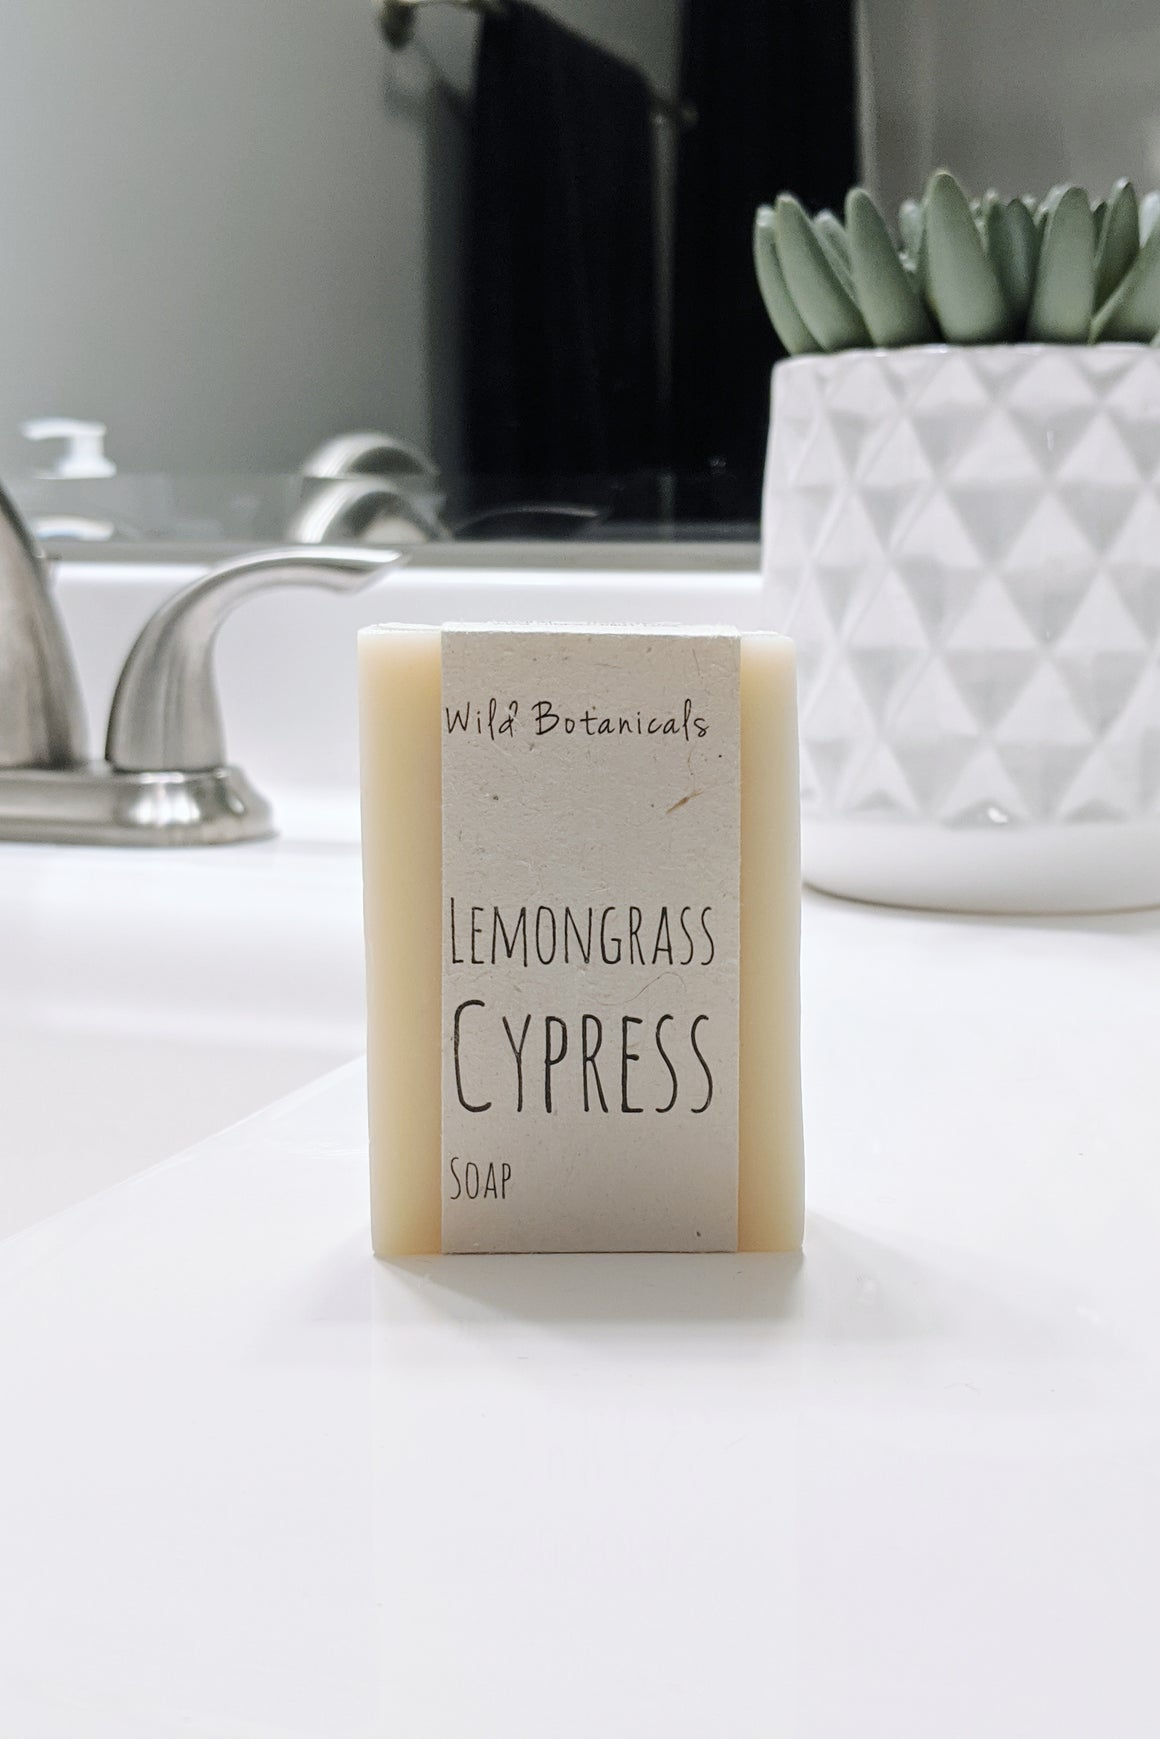 Lemongrass Cypress Soap